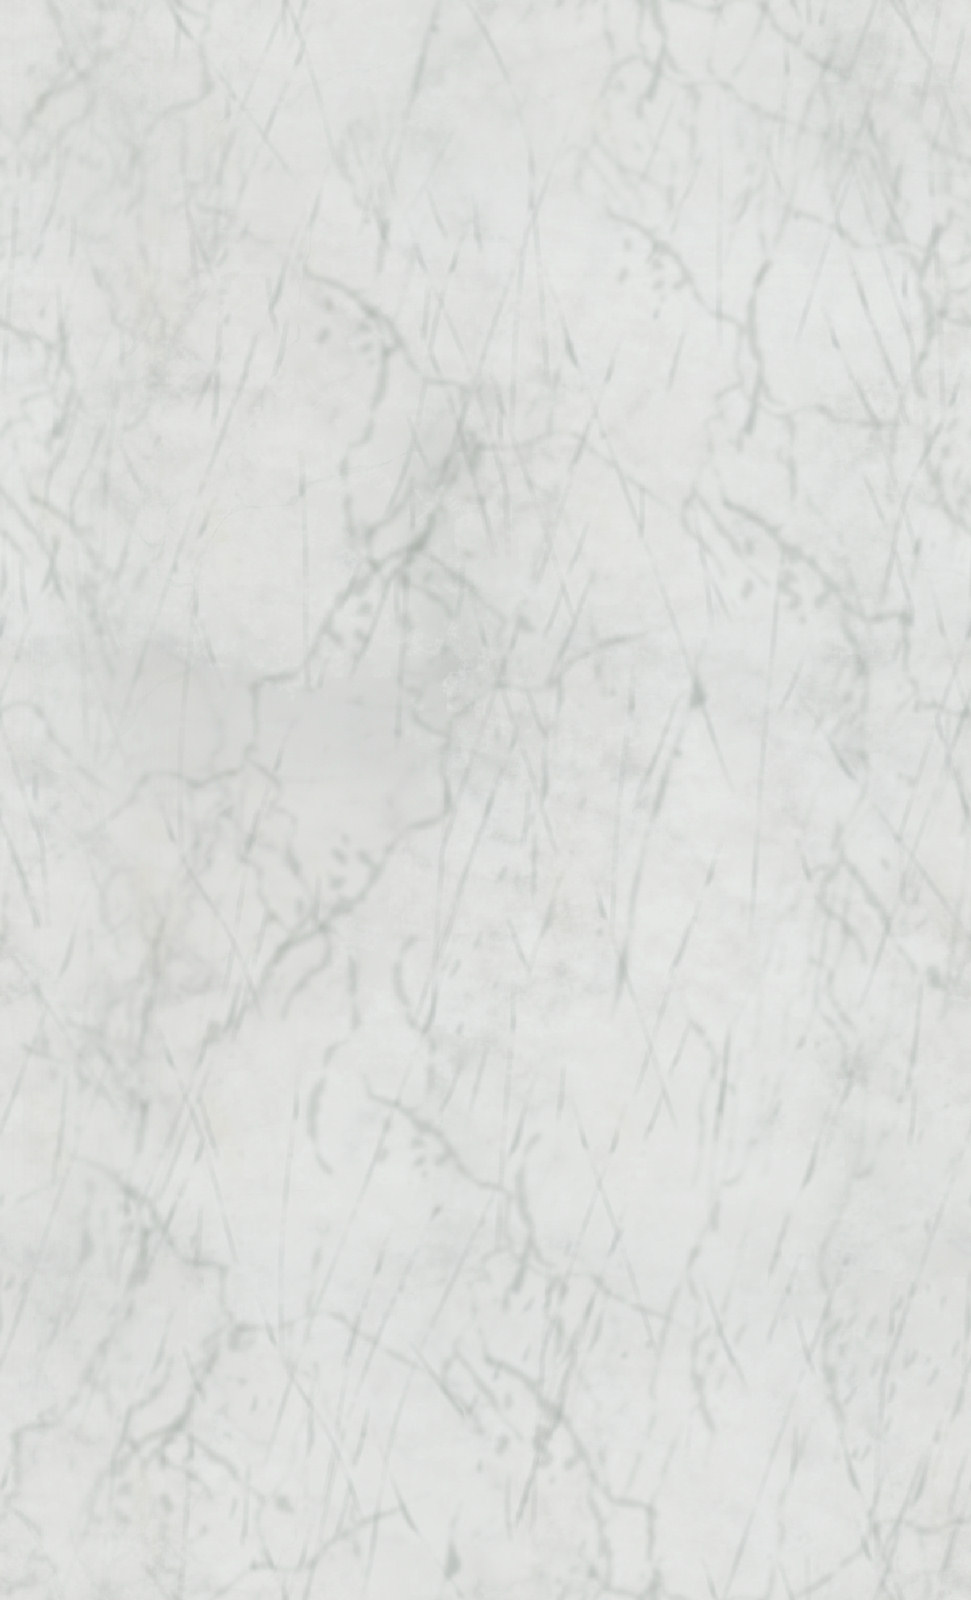 Top Wallpaper Marble April - whitecararaslab02  Pic_795245.jpg